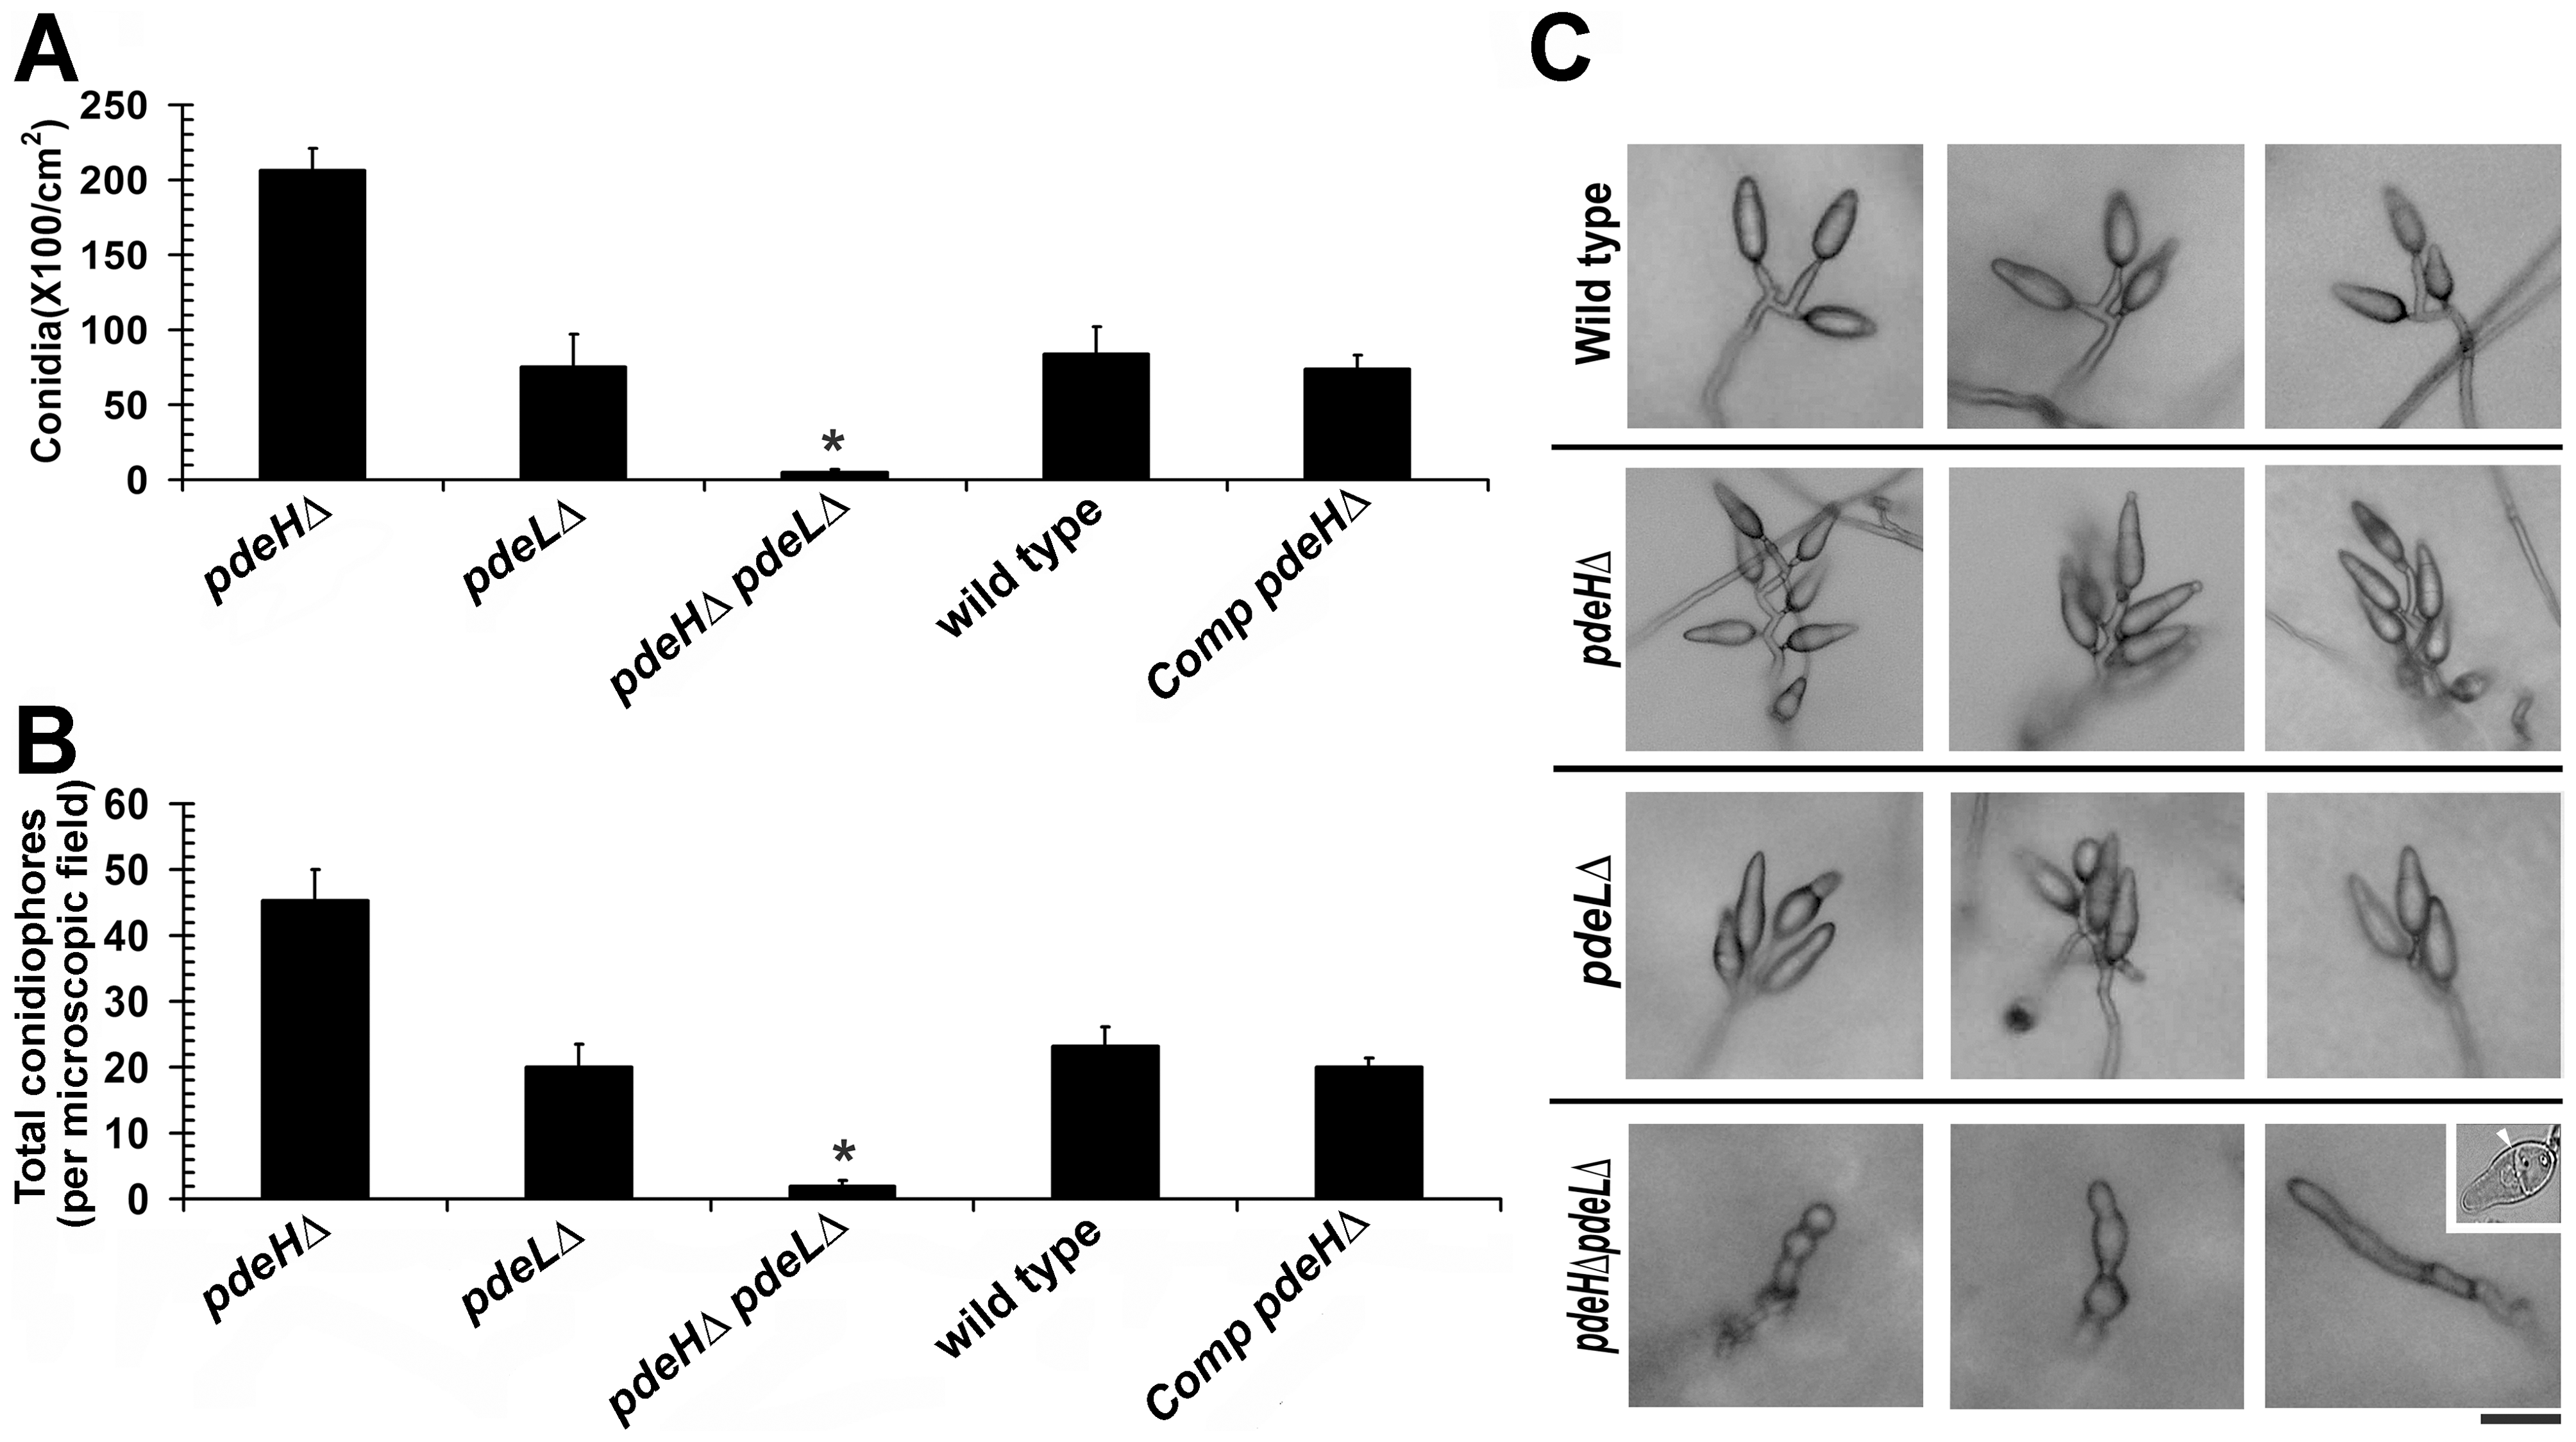 PdeH function regulates asexual development in <i>M. oryzae</i>.